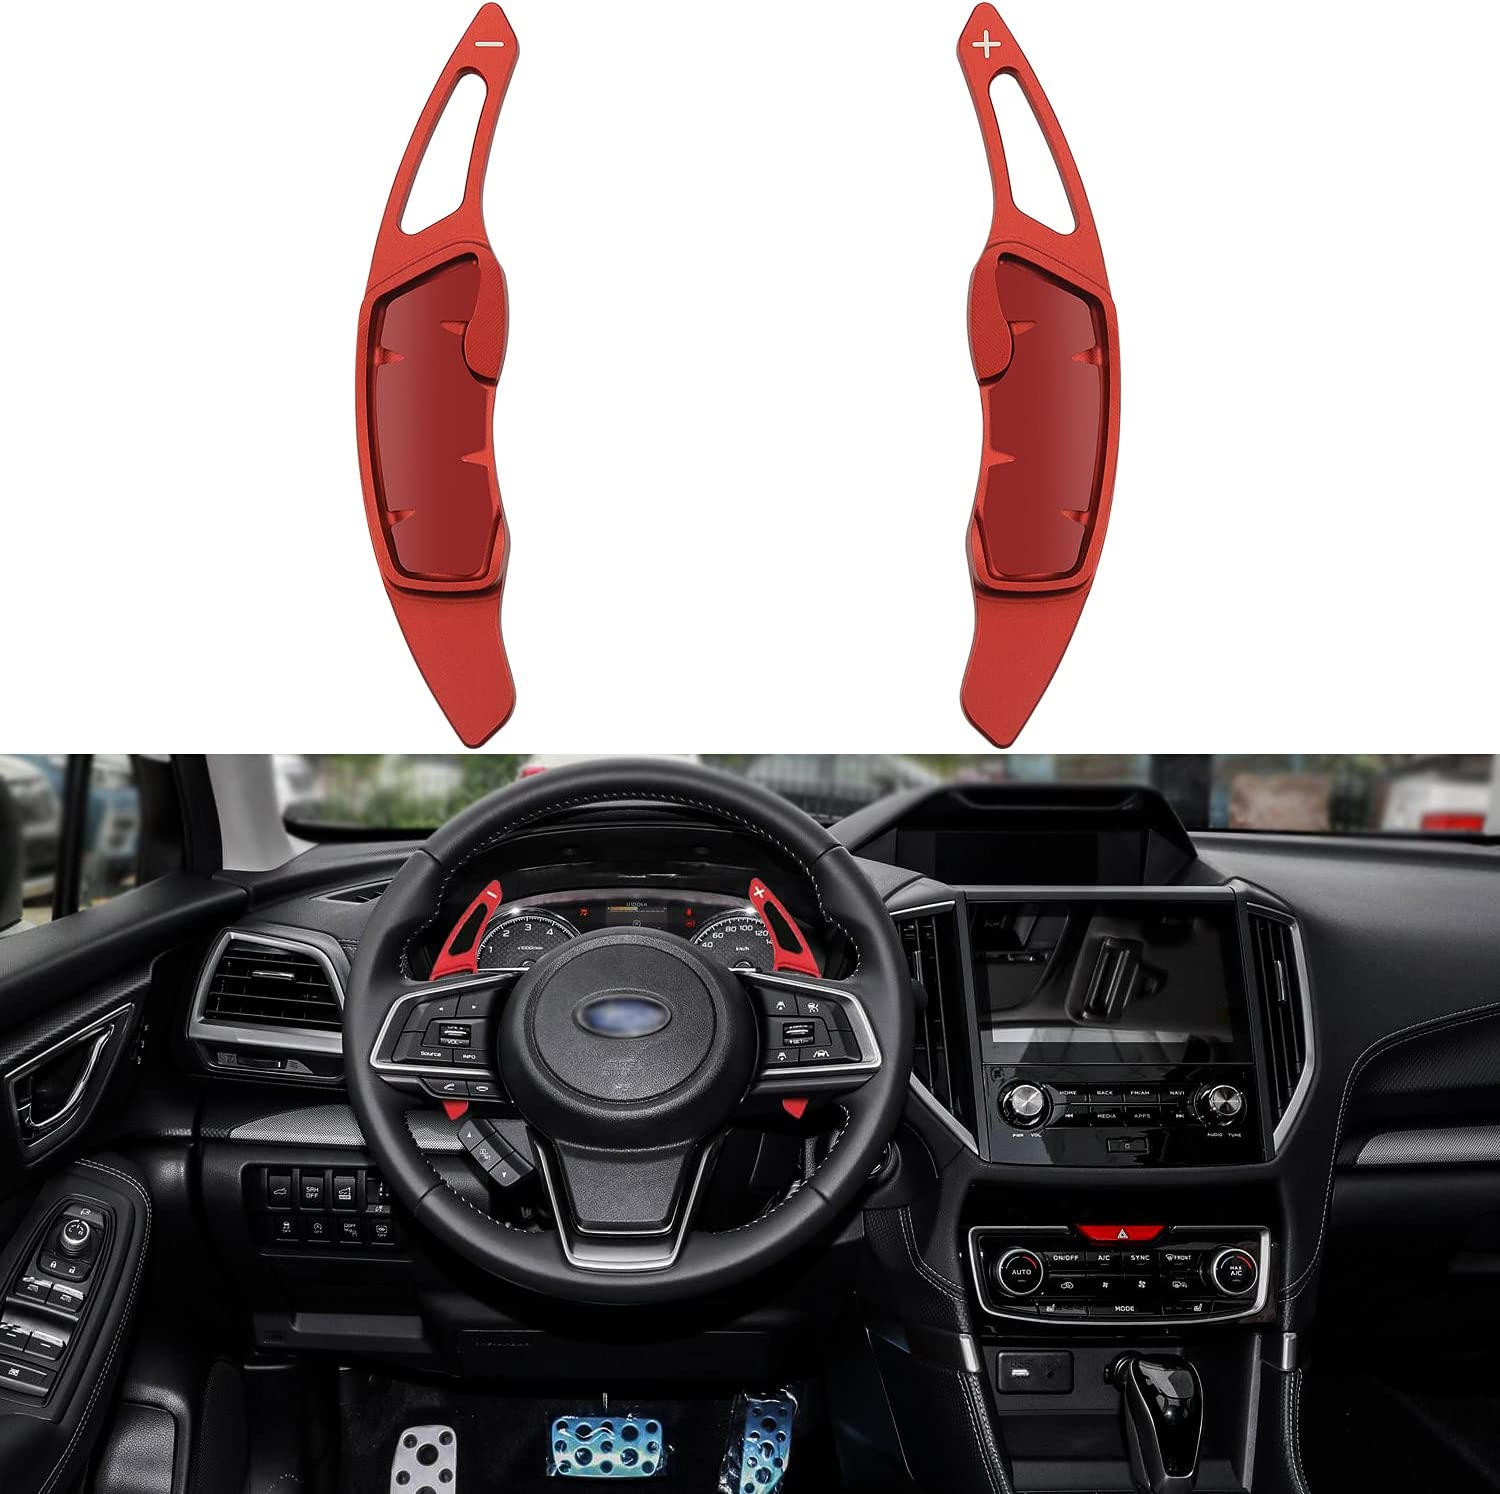 Kujunpao Subaru Accessories Shift Paddles Cover Extension Steering Wheel Shifter Extended Trim Decor For Scion FR-S Subaru Forester Outback XV BRZ WRX Impreza Crosstrek Legacy GT86(Red)